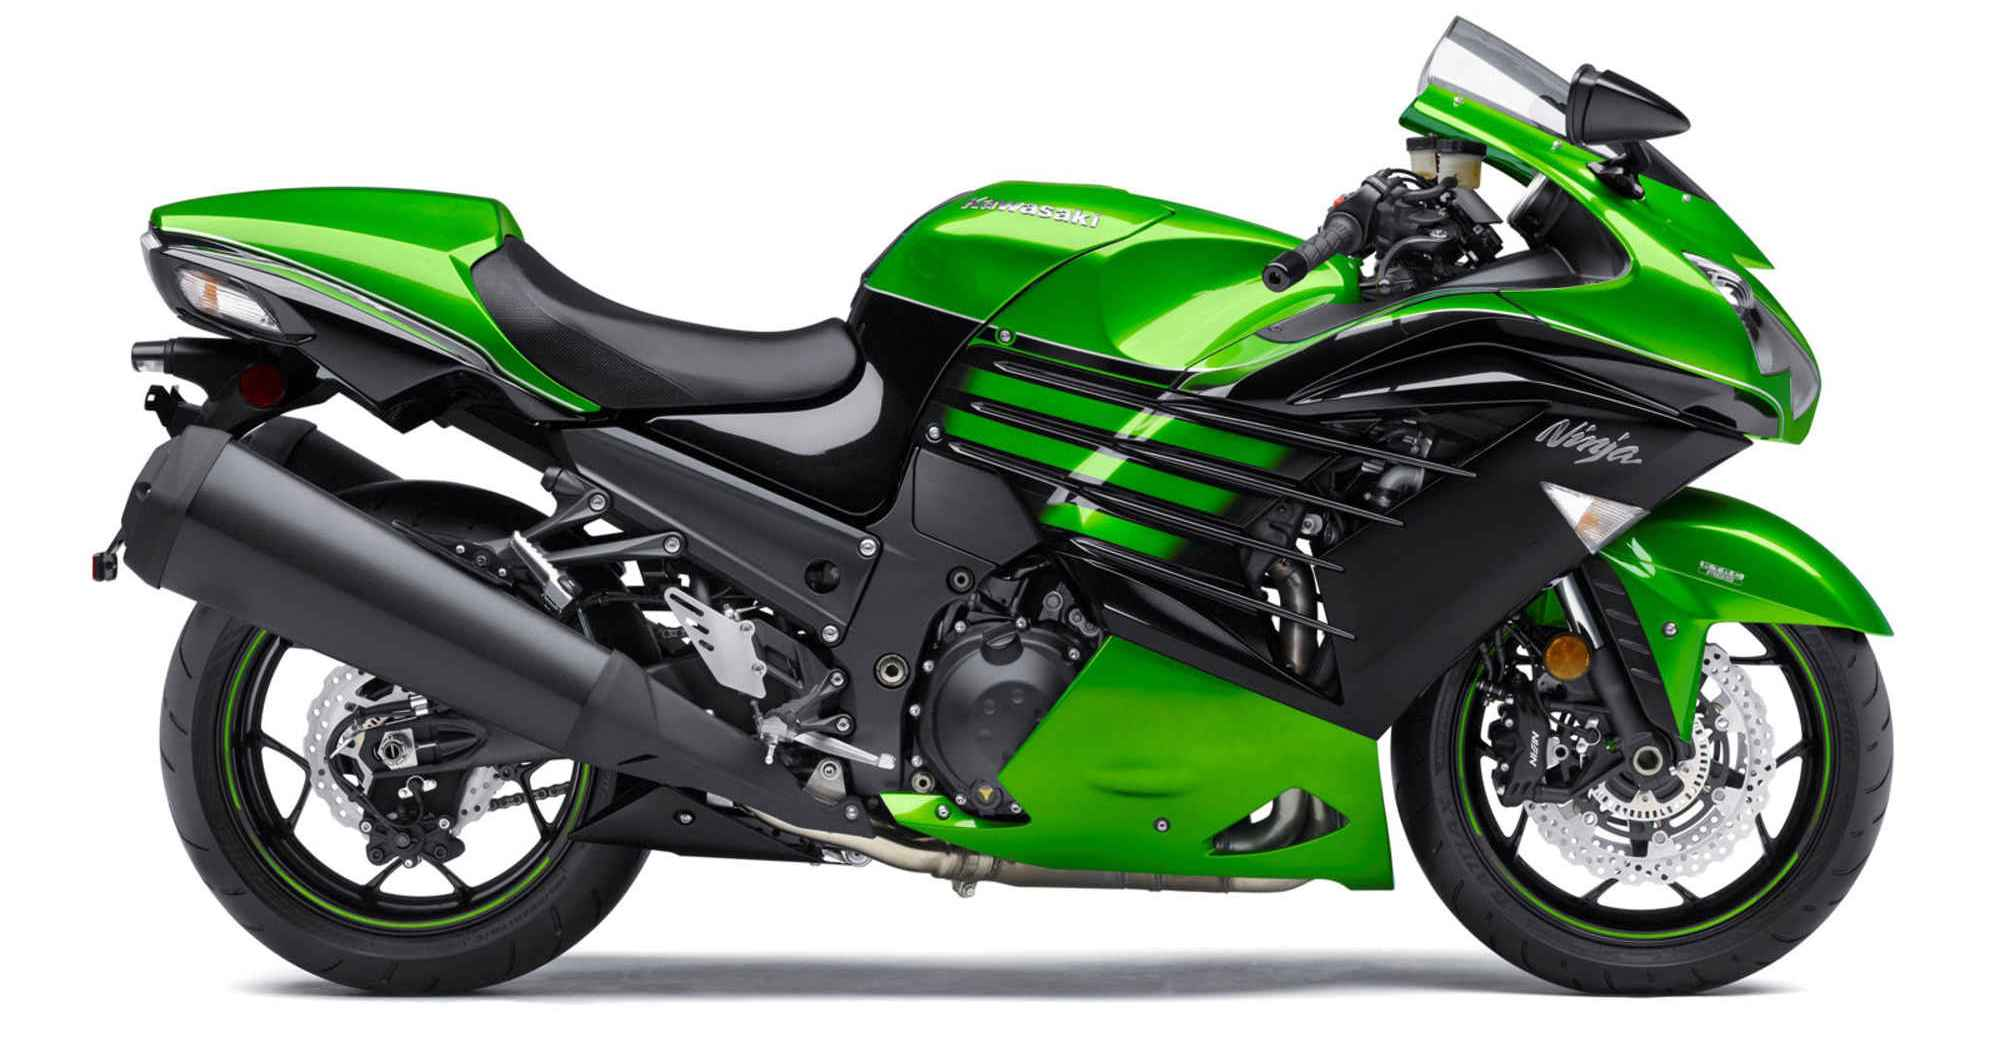 2016-Kawasaki-ZX-14R-ABS-Green-Color